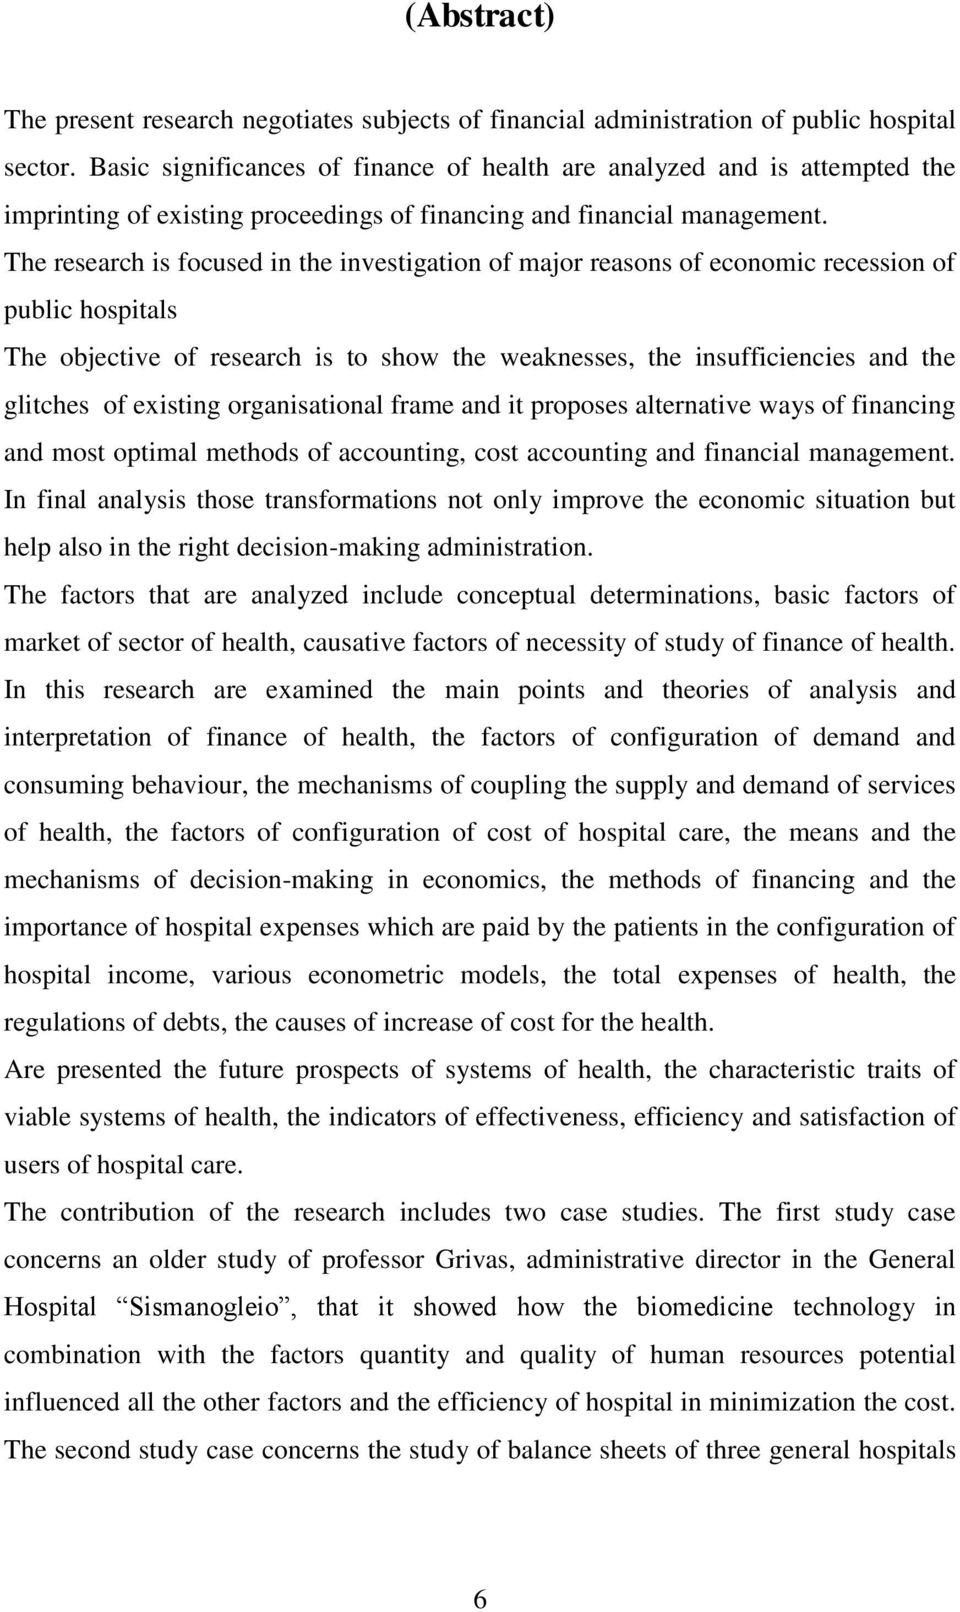 The research is focused in the investigation of major reasons of economic recession of public hospitals The objective of research is to show the weaknesses, the insufficiencies and the glitches of